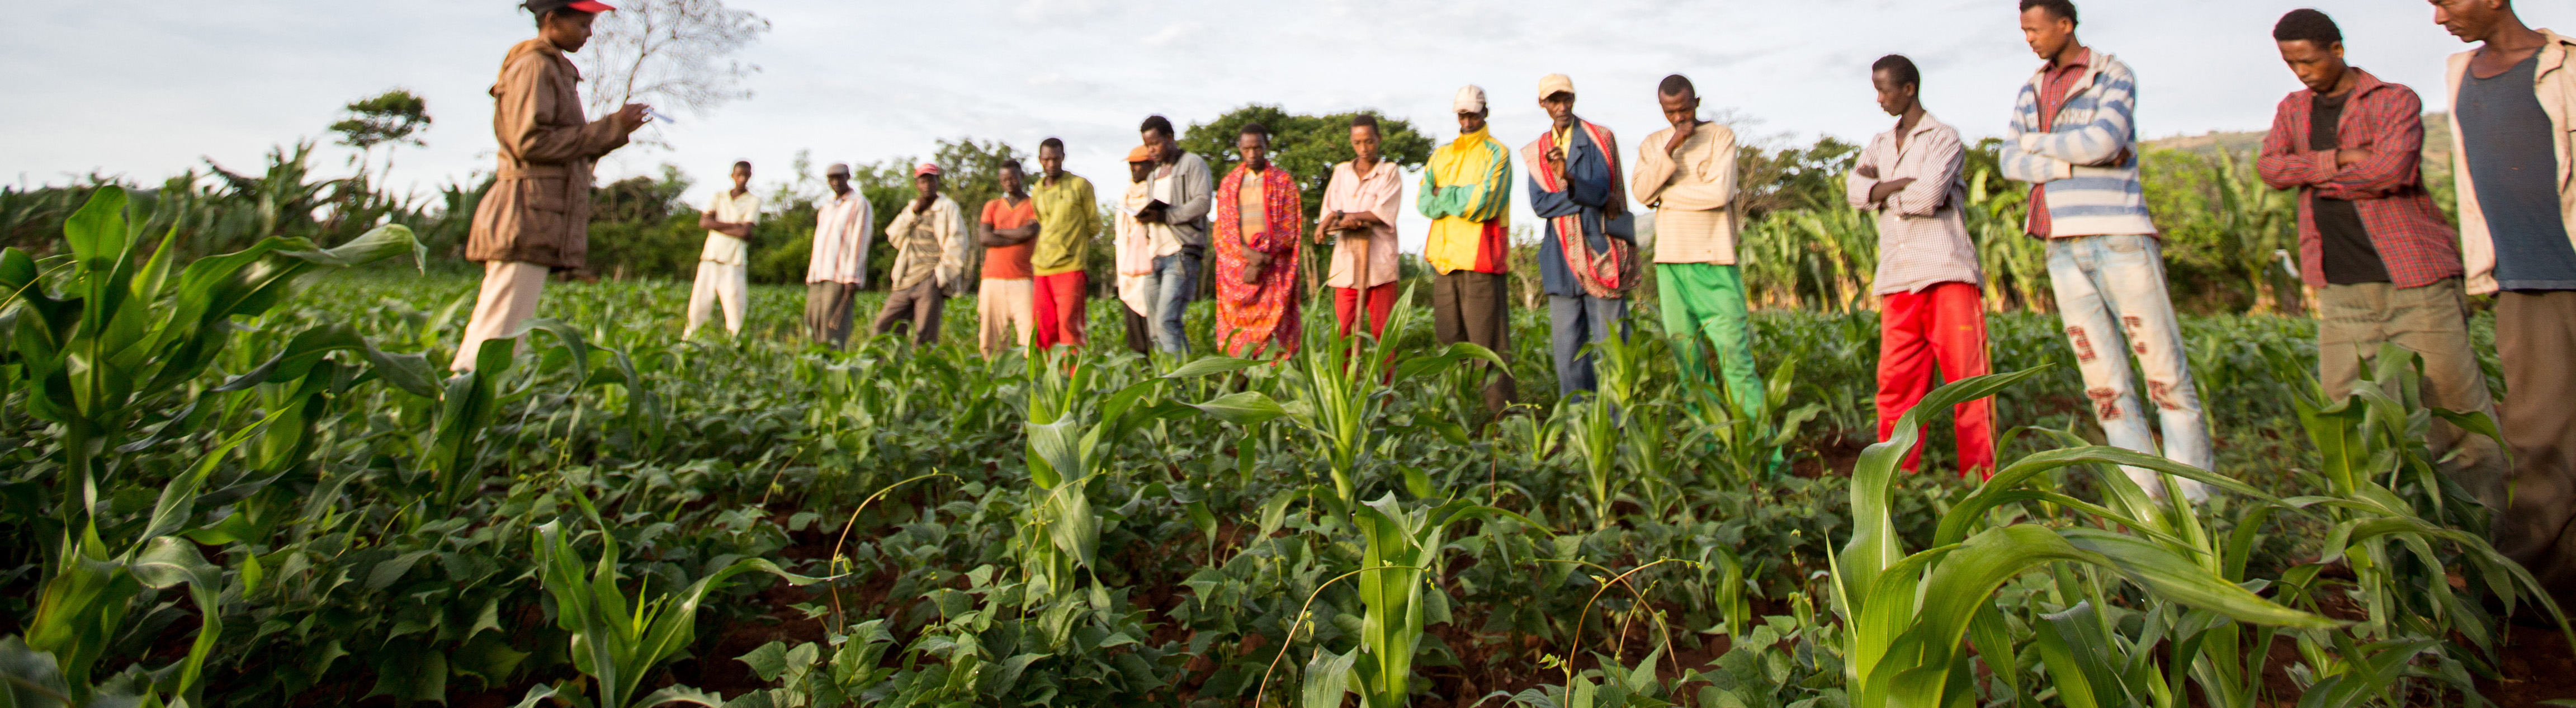 Nuru Partners to Build Sustainable Farmer Organizations